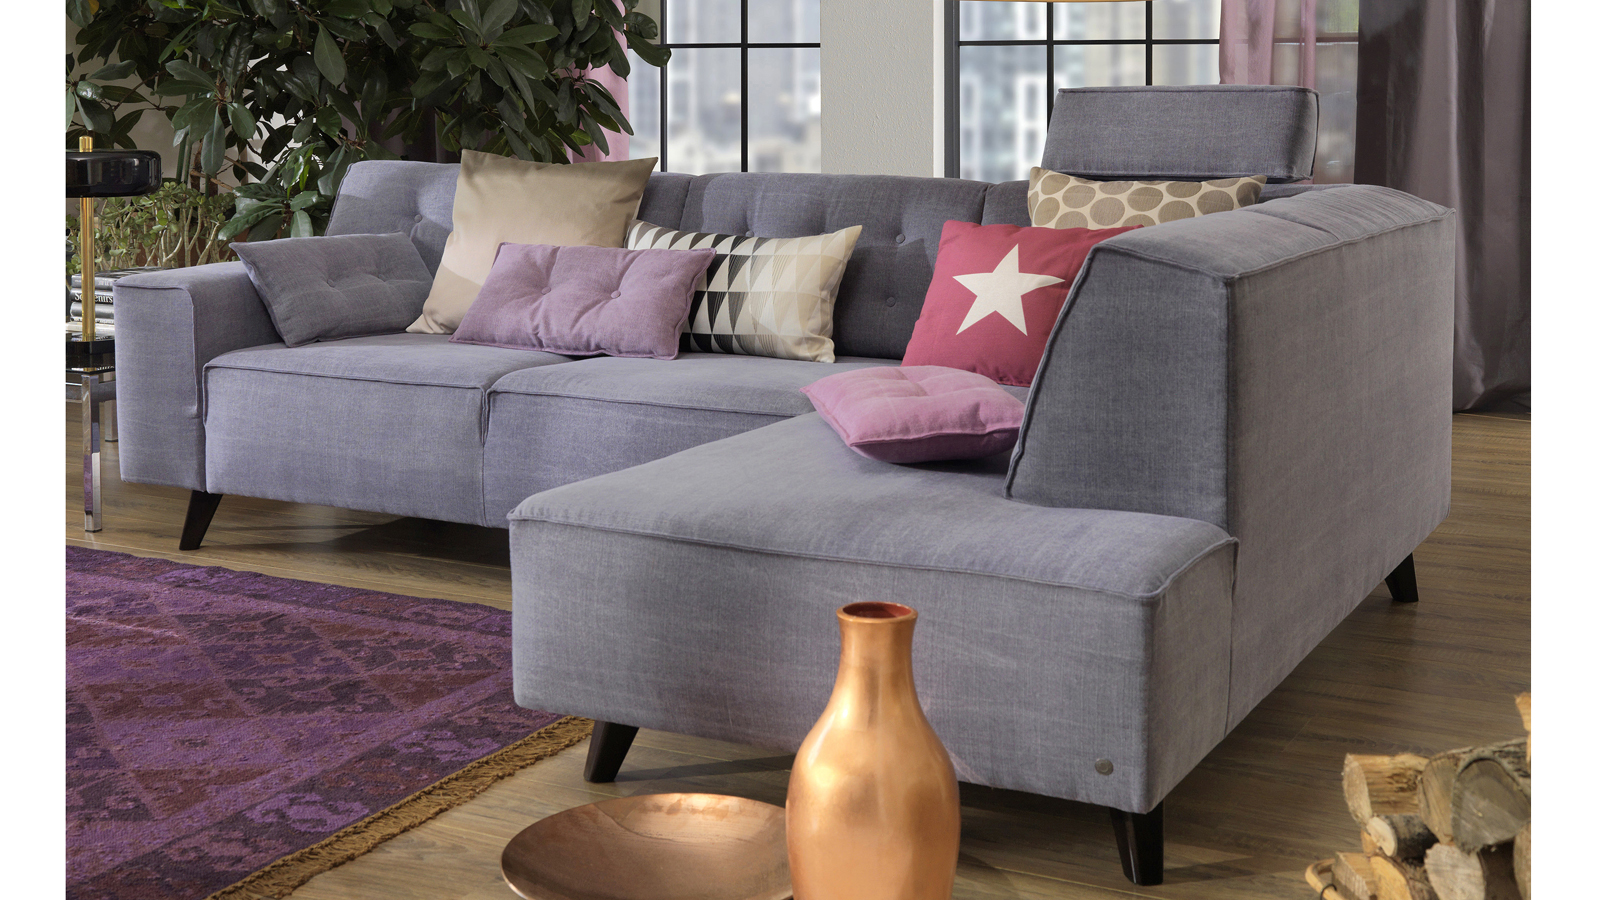 Full Size of Tom Tailor Sofa West Coast Couch Heaven Style Elements Xl Chic Nordic Pure Big Cube Ulrich Wohnen Muuto Schillig Türkis Mit Schlaffunktion Led Rolf Benz Sofa Tom Tailor Sofa